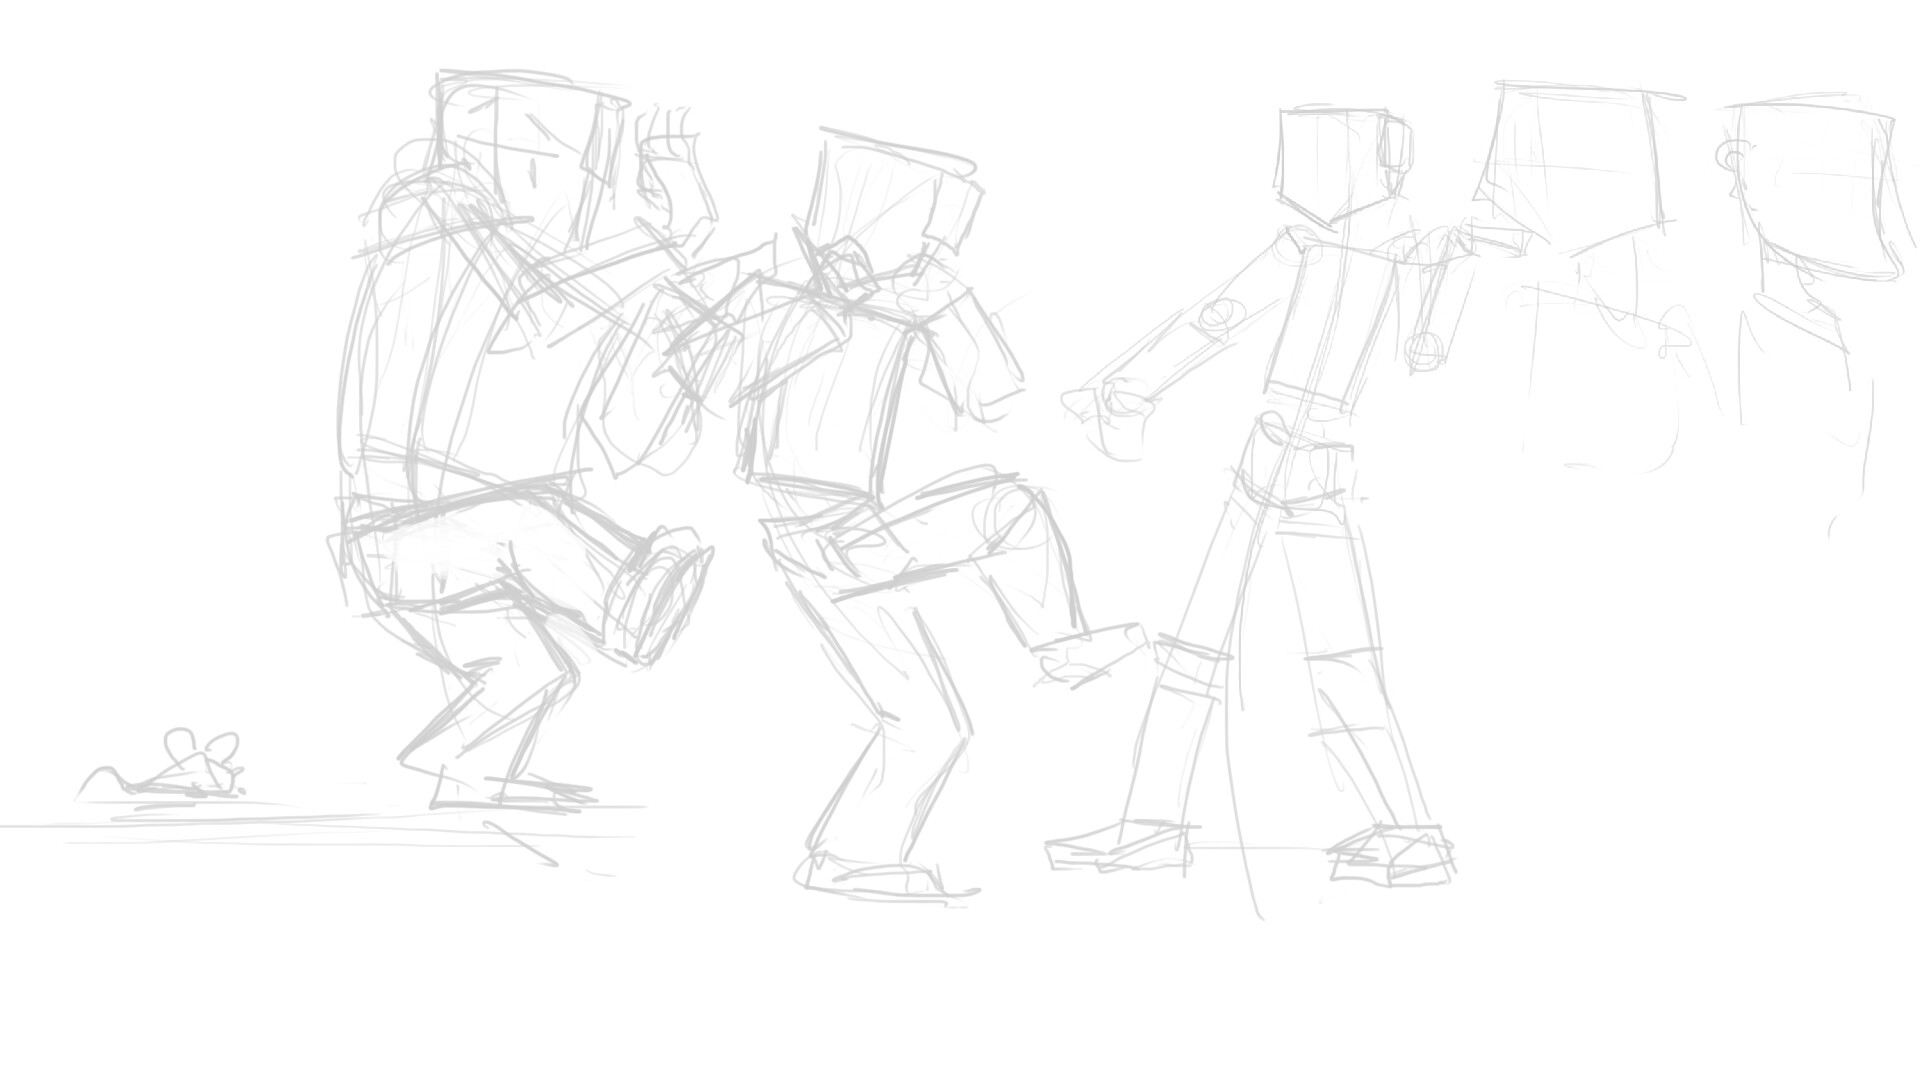 Rough Sketches and gestures.